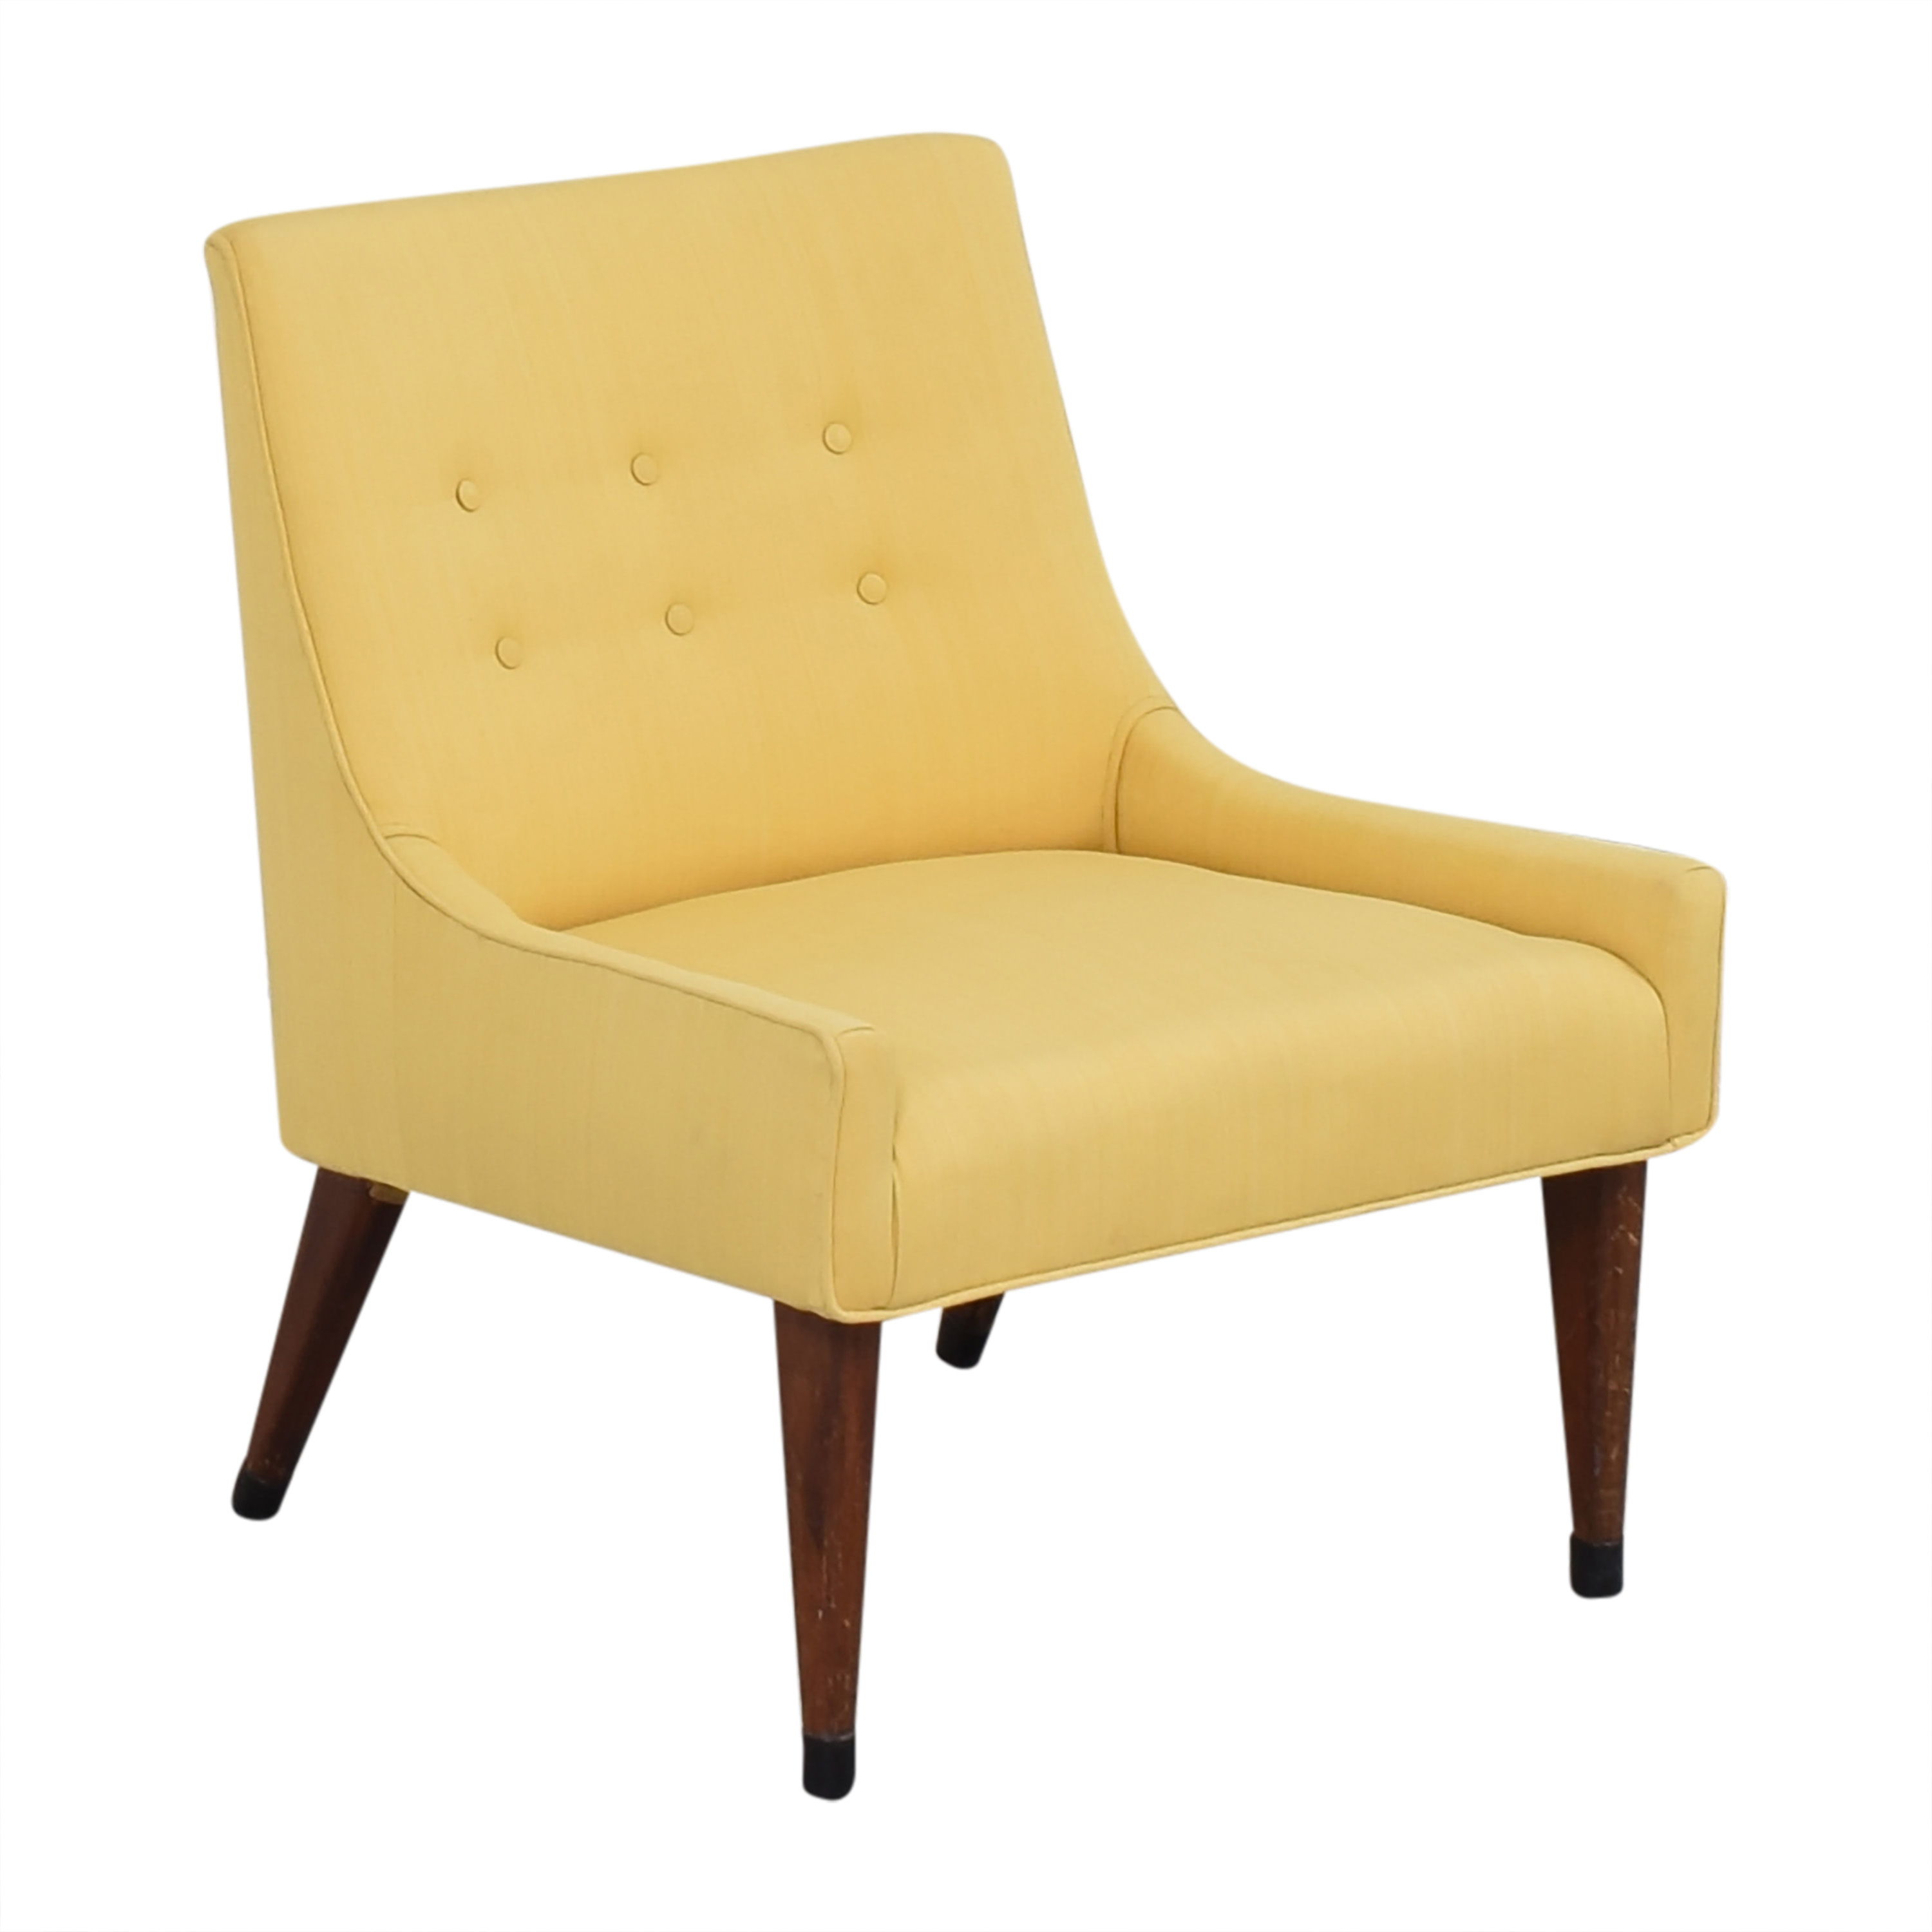 buy Mid-Century Modern Accent Chair